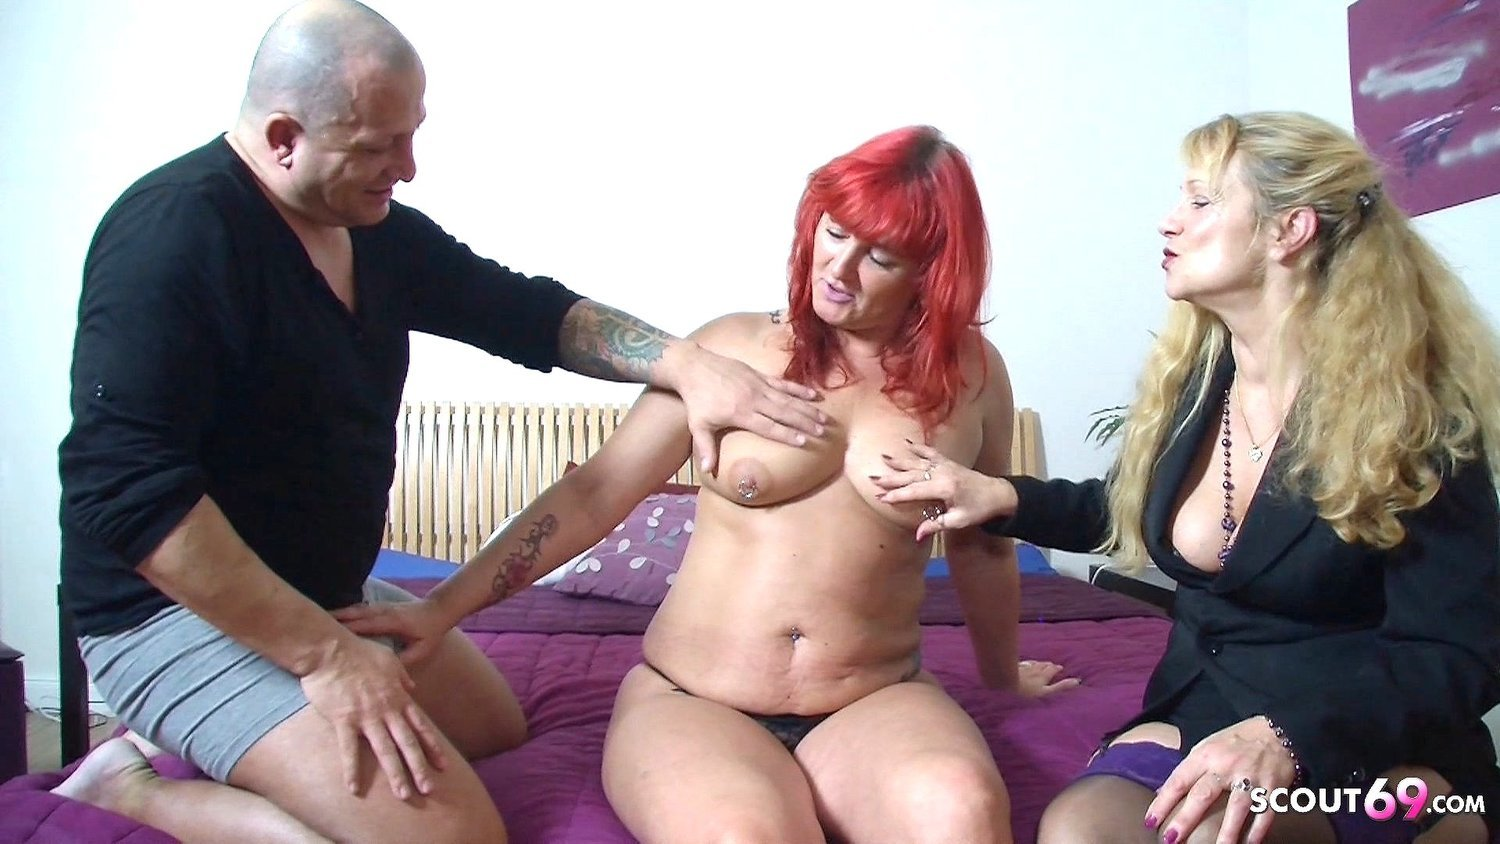 German Redhead Mature Wife at First FFM Threesome in Casting